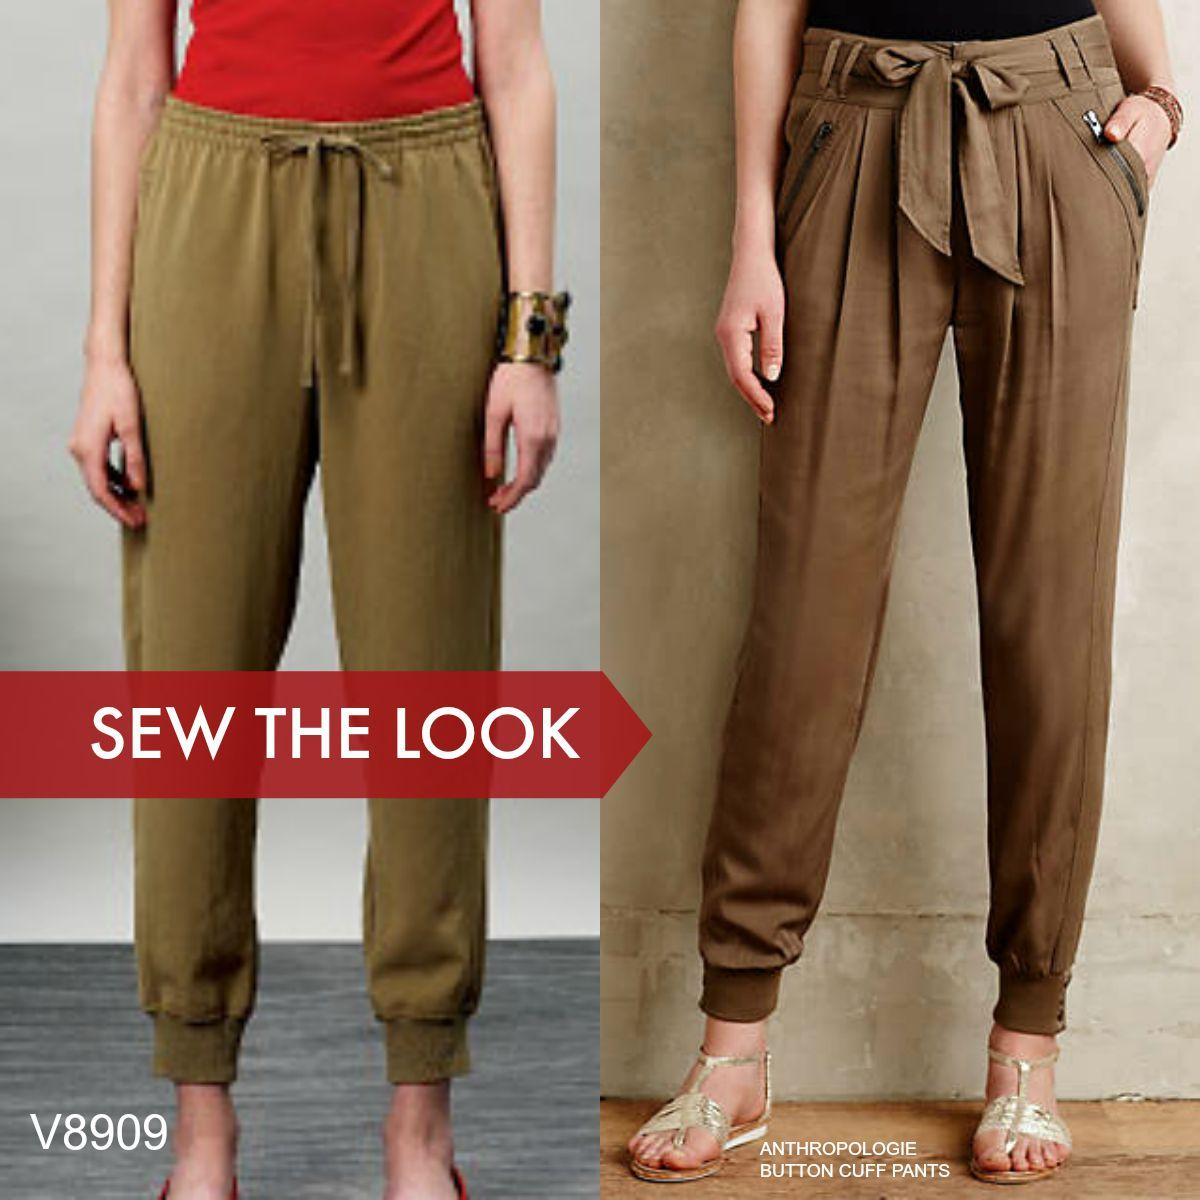 c0a2ec807bb4a0 Sew the Look: Jogging pants in silk or crepe are easy to wear and make.  This pattern is Vogue Patterns V8909.